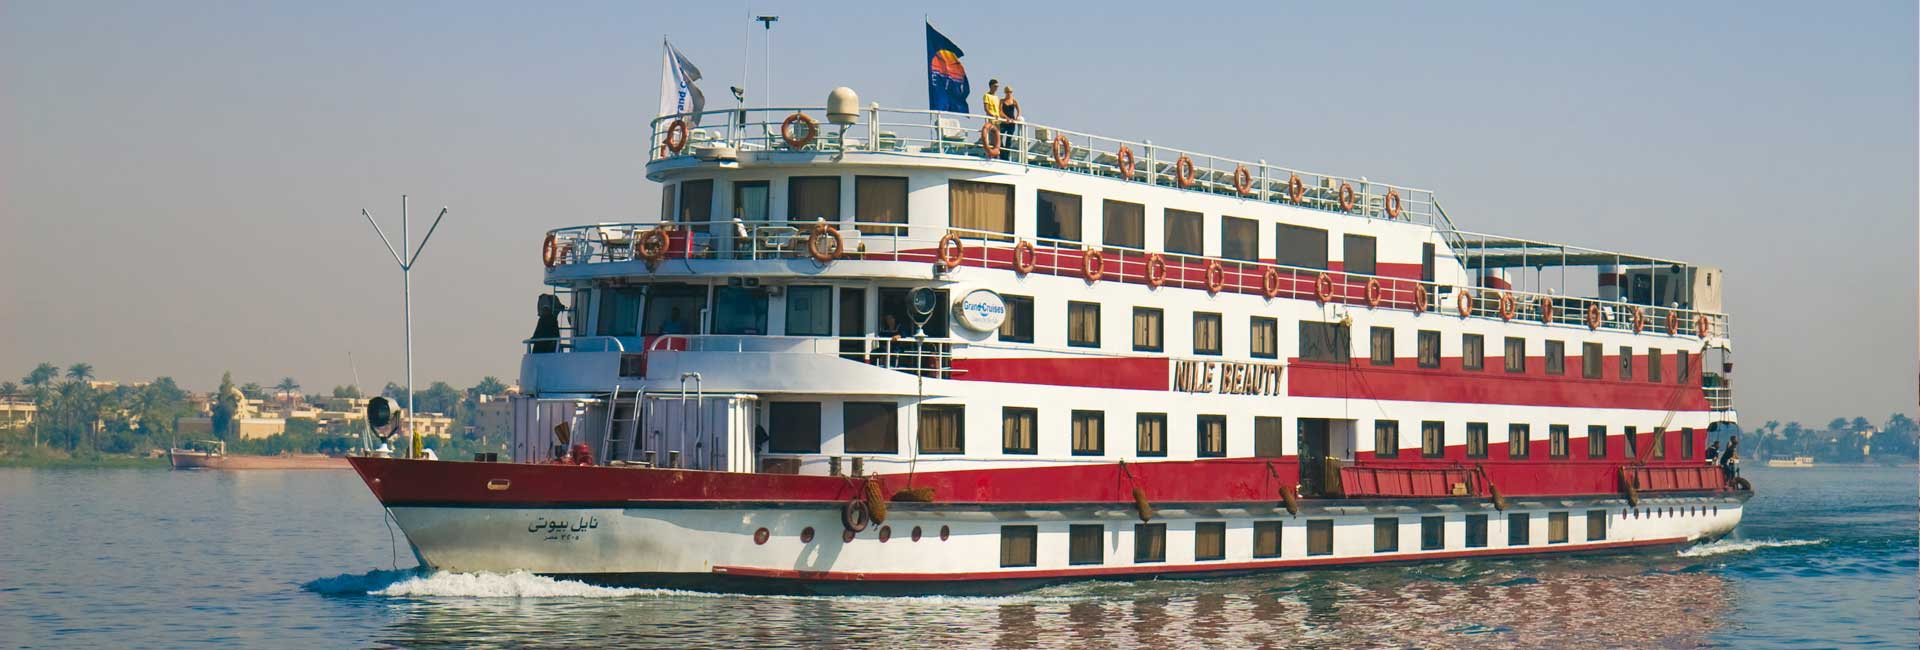 Nile Cruise Tour